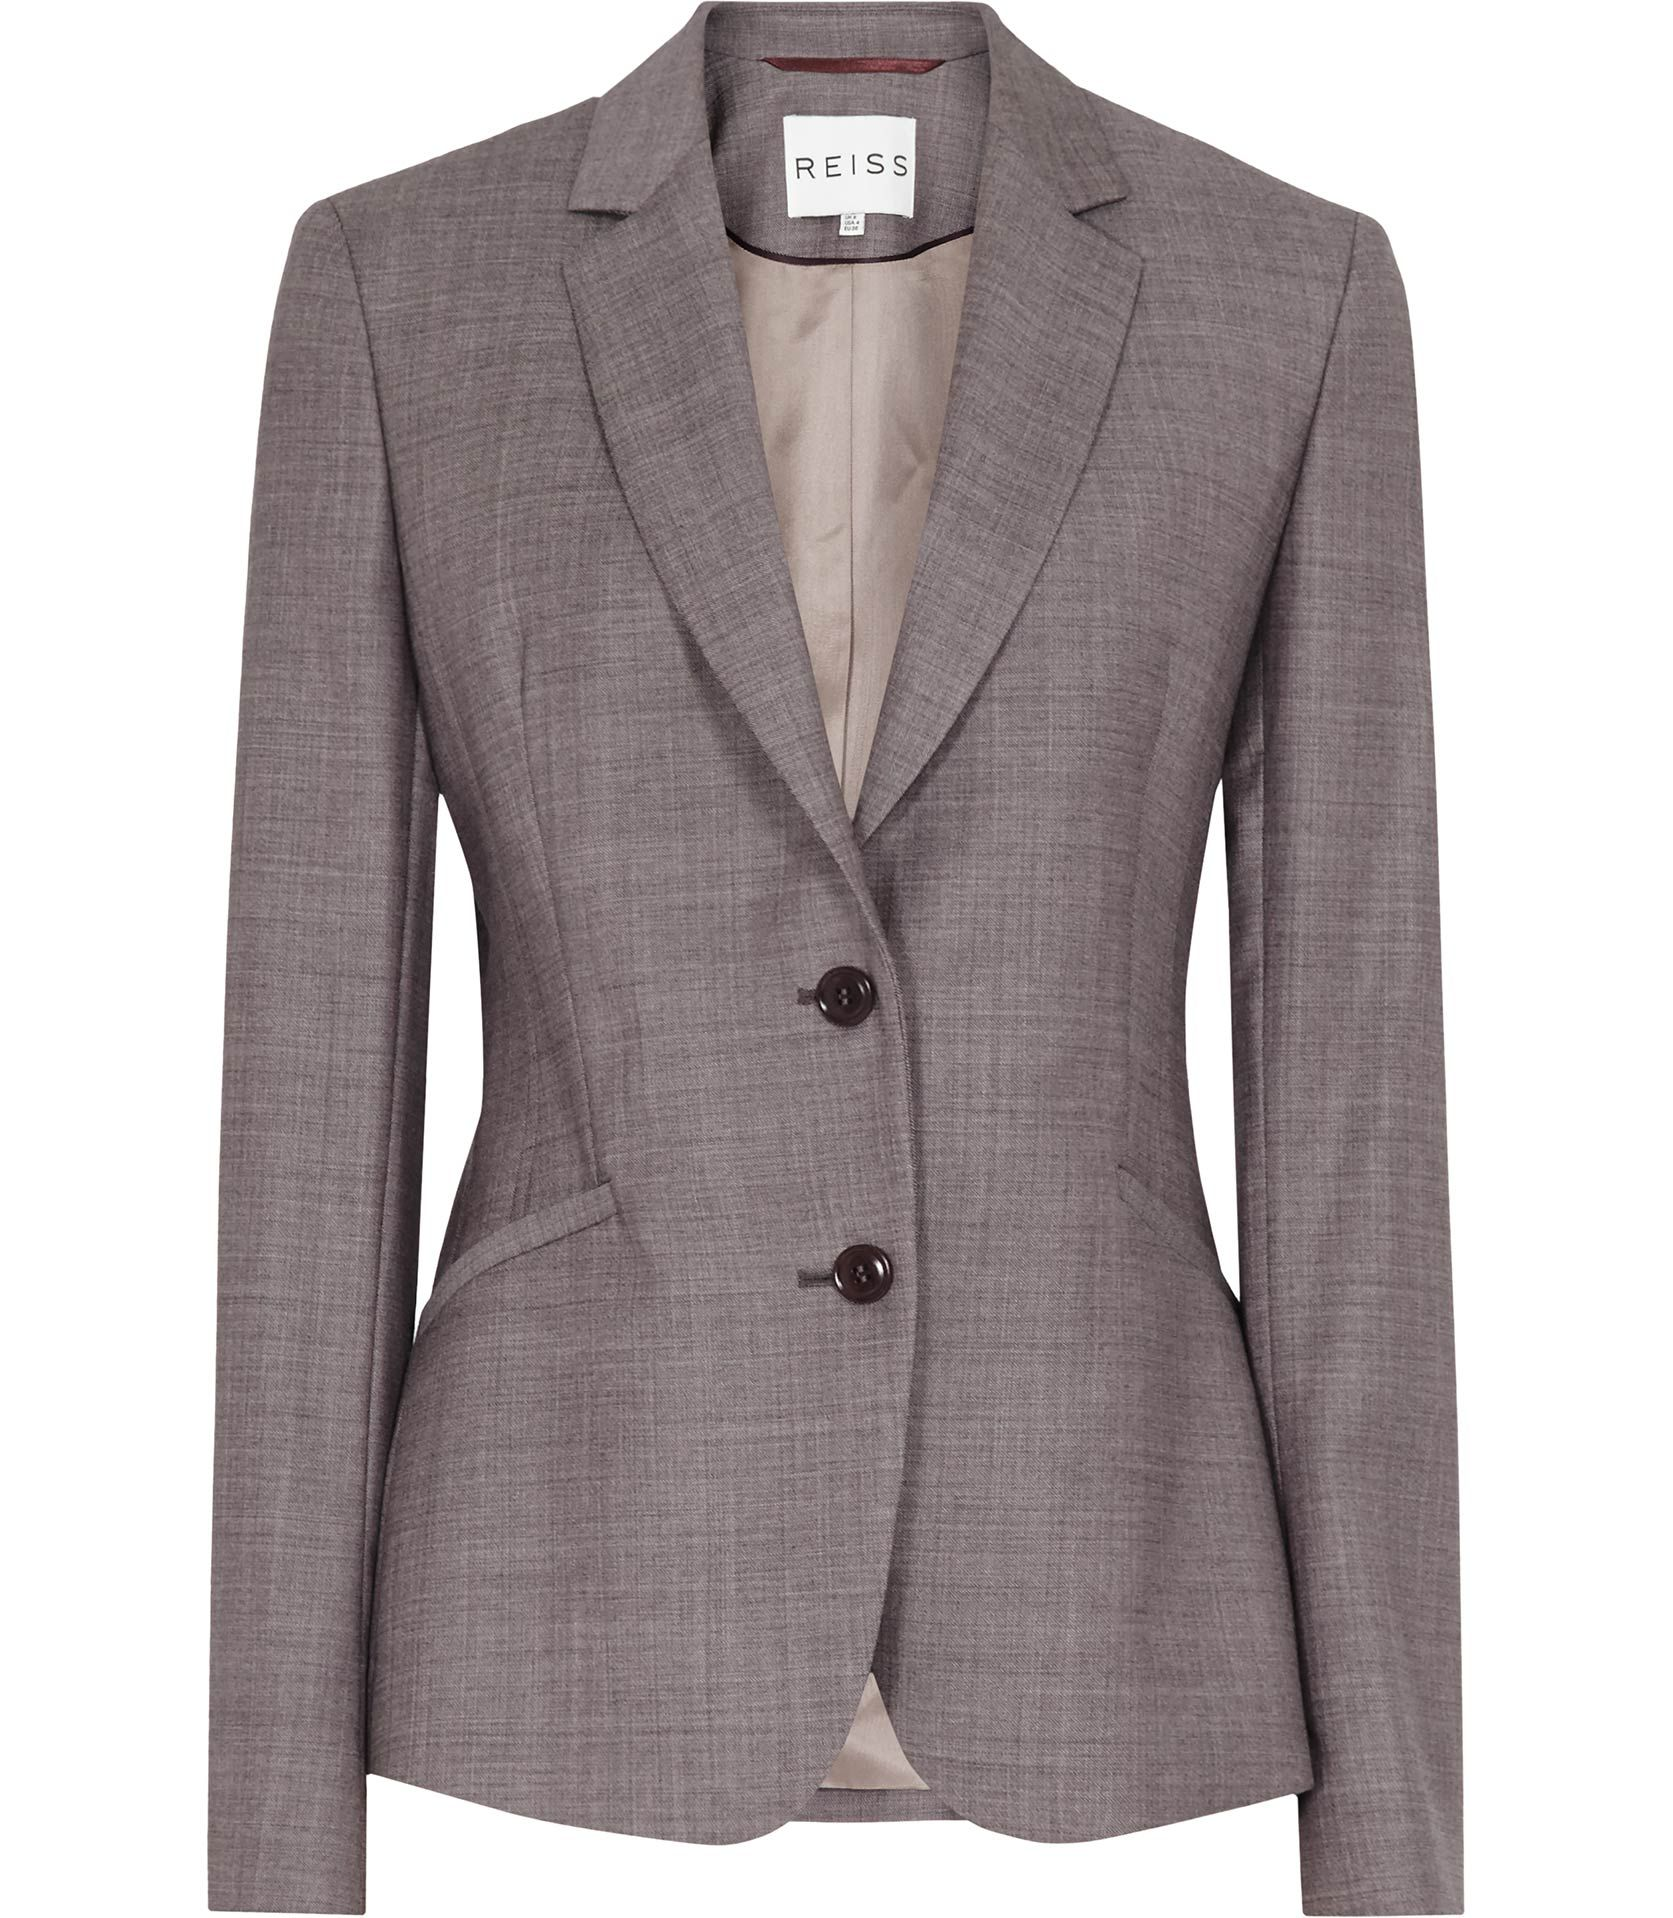 859e2ac5f4 Womens Cranberry Sharply Tailored Jacket - Reiss Sorrento | British ...